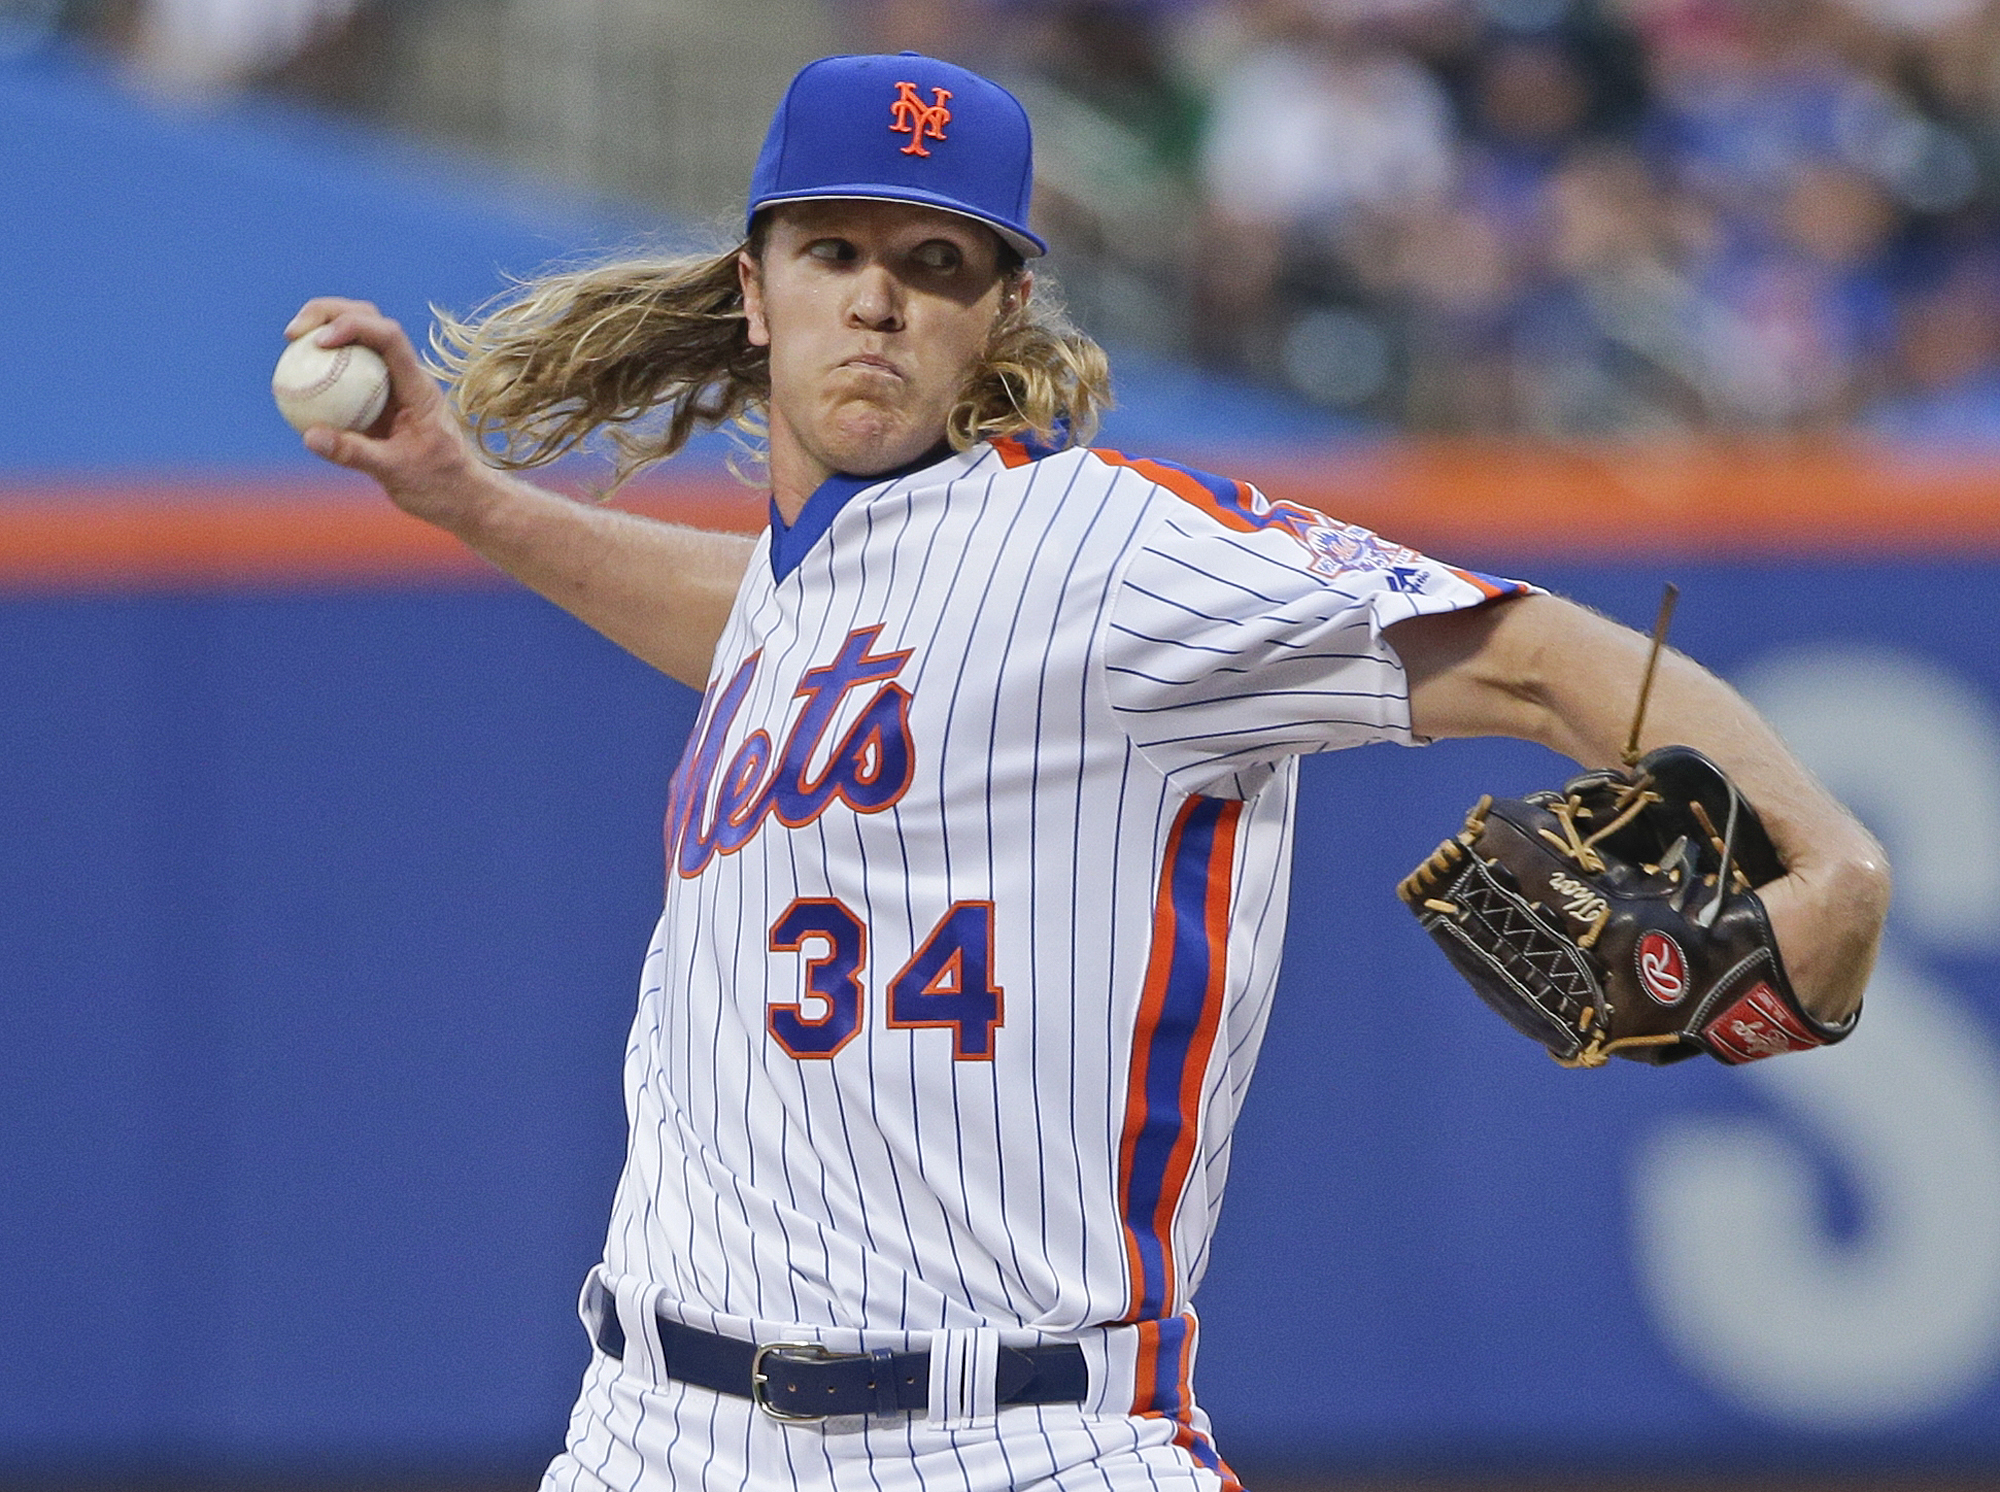 New York Mets' Noah Syndergaard delivers a pitch during the first inning of a baseball game against the Los Angeles Dodgers, Saturday, May 28, 2016, in New York. (AP Photo/Frank Franklin II)